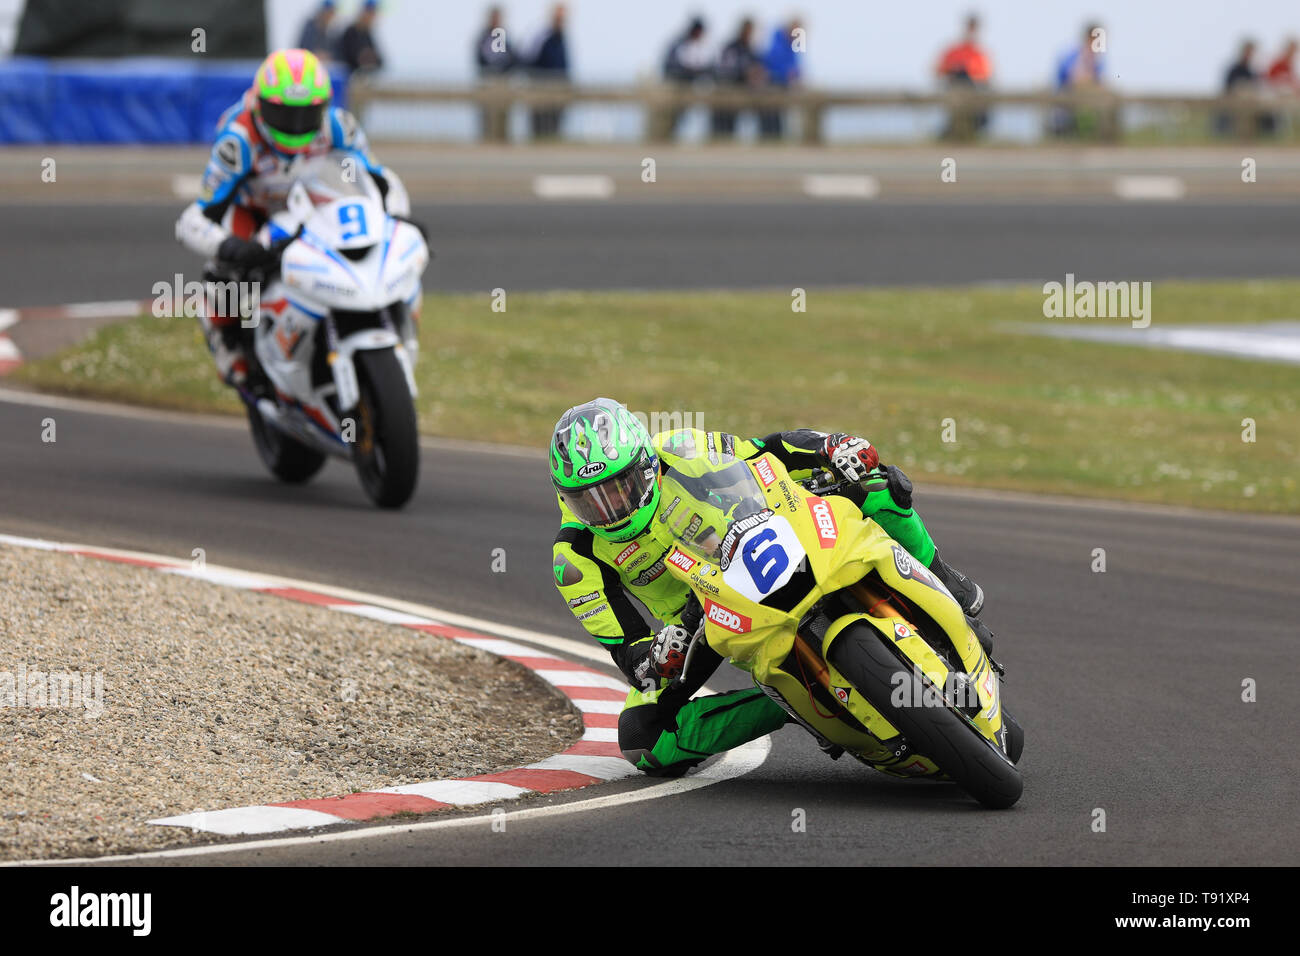 Portrush, Northern Ireland. 16th May, 2019. International North West 200 Motorcycle road racing, Thursday practice and evening racing; Spain's Victor Lopez on the Martimotos Racing Team Yamaha during the SuperSport qualifying session Credit: Action Plus Sports/Alamy Live News - Stock Image